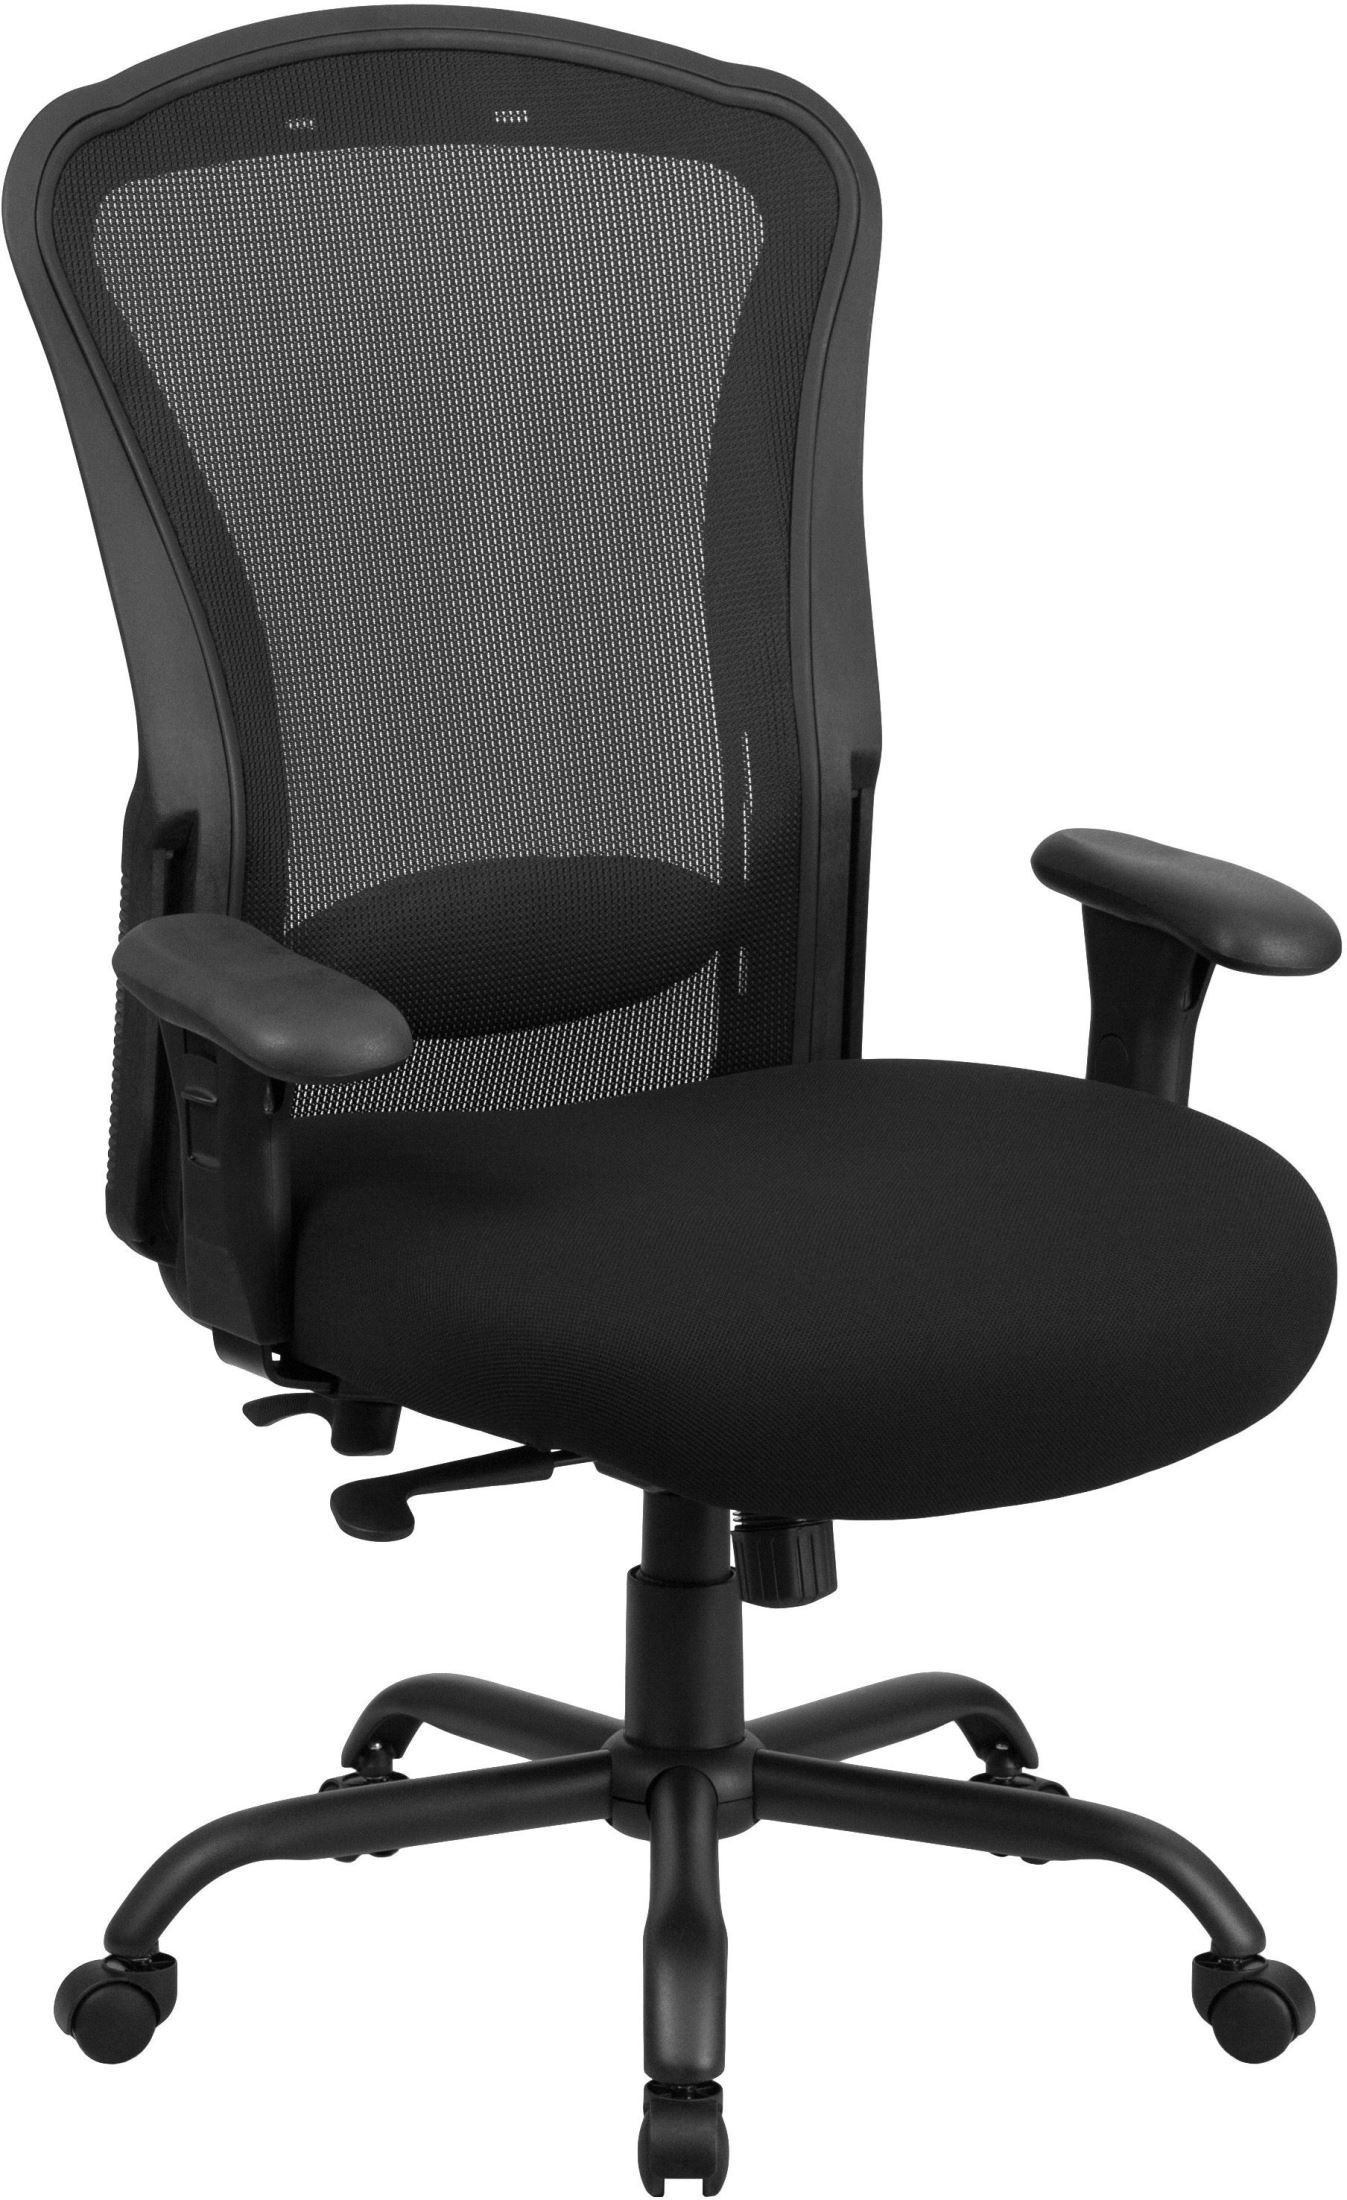 Black Swivel Chair Hercules 24 7 Big And Tall Black Multi Functional Swivel